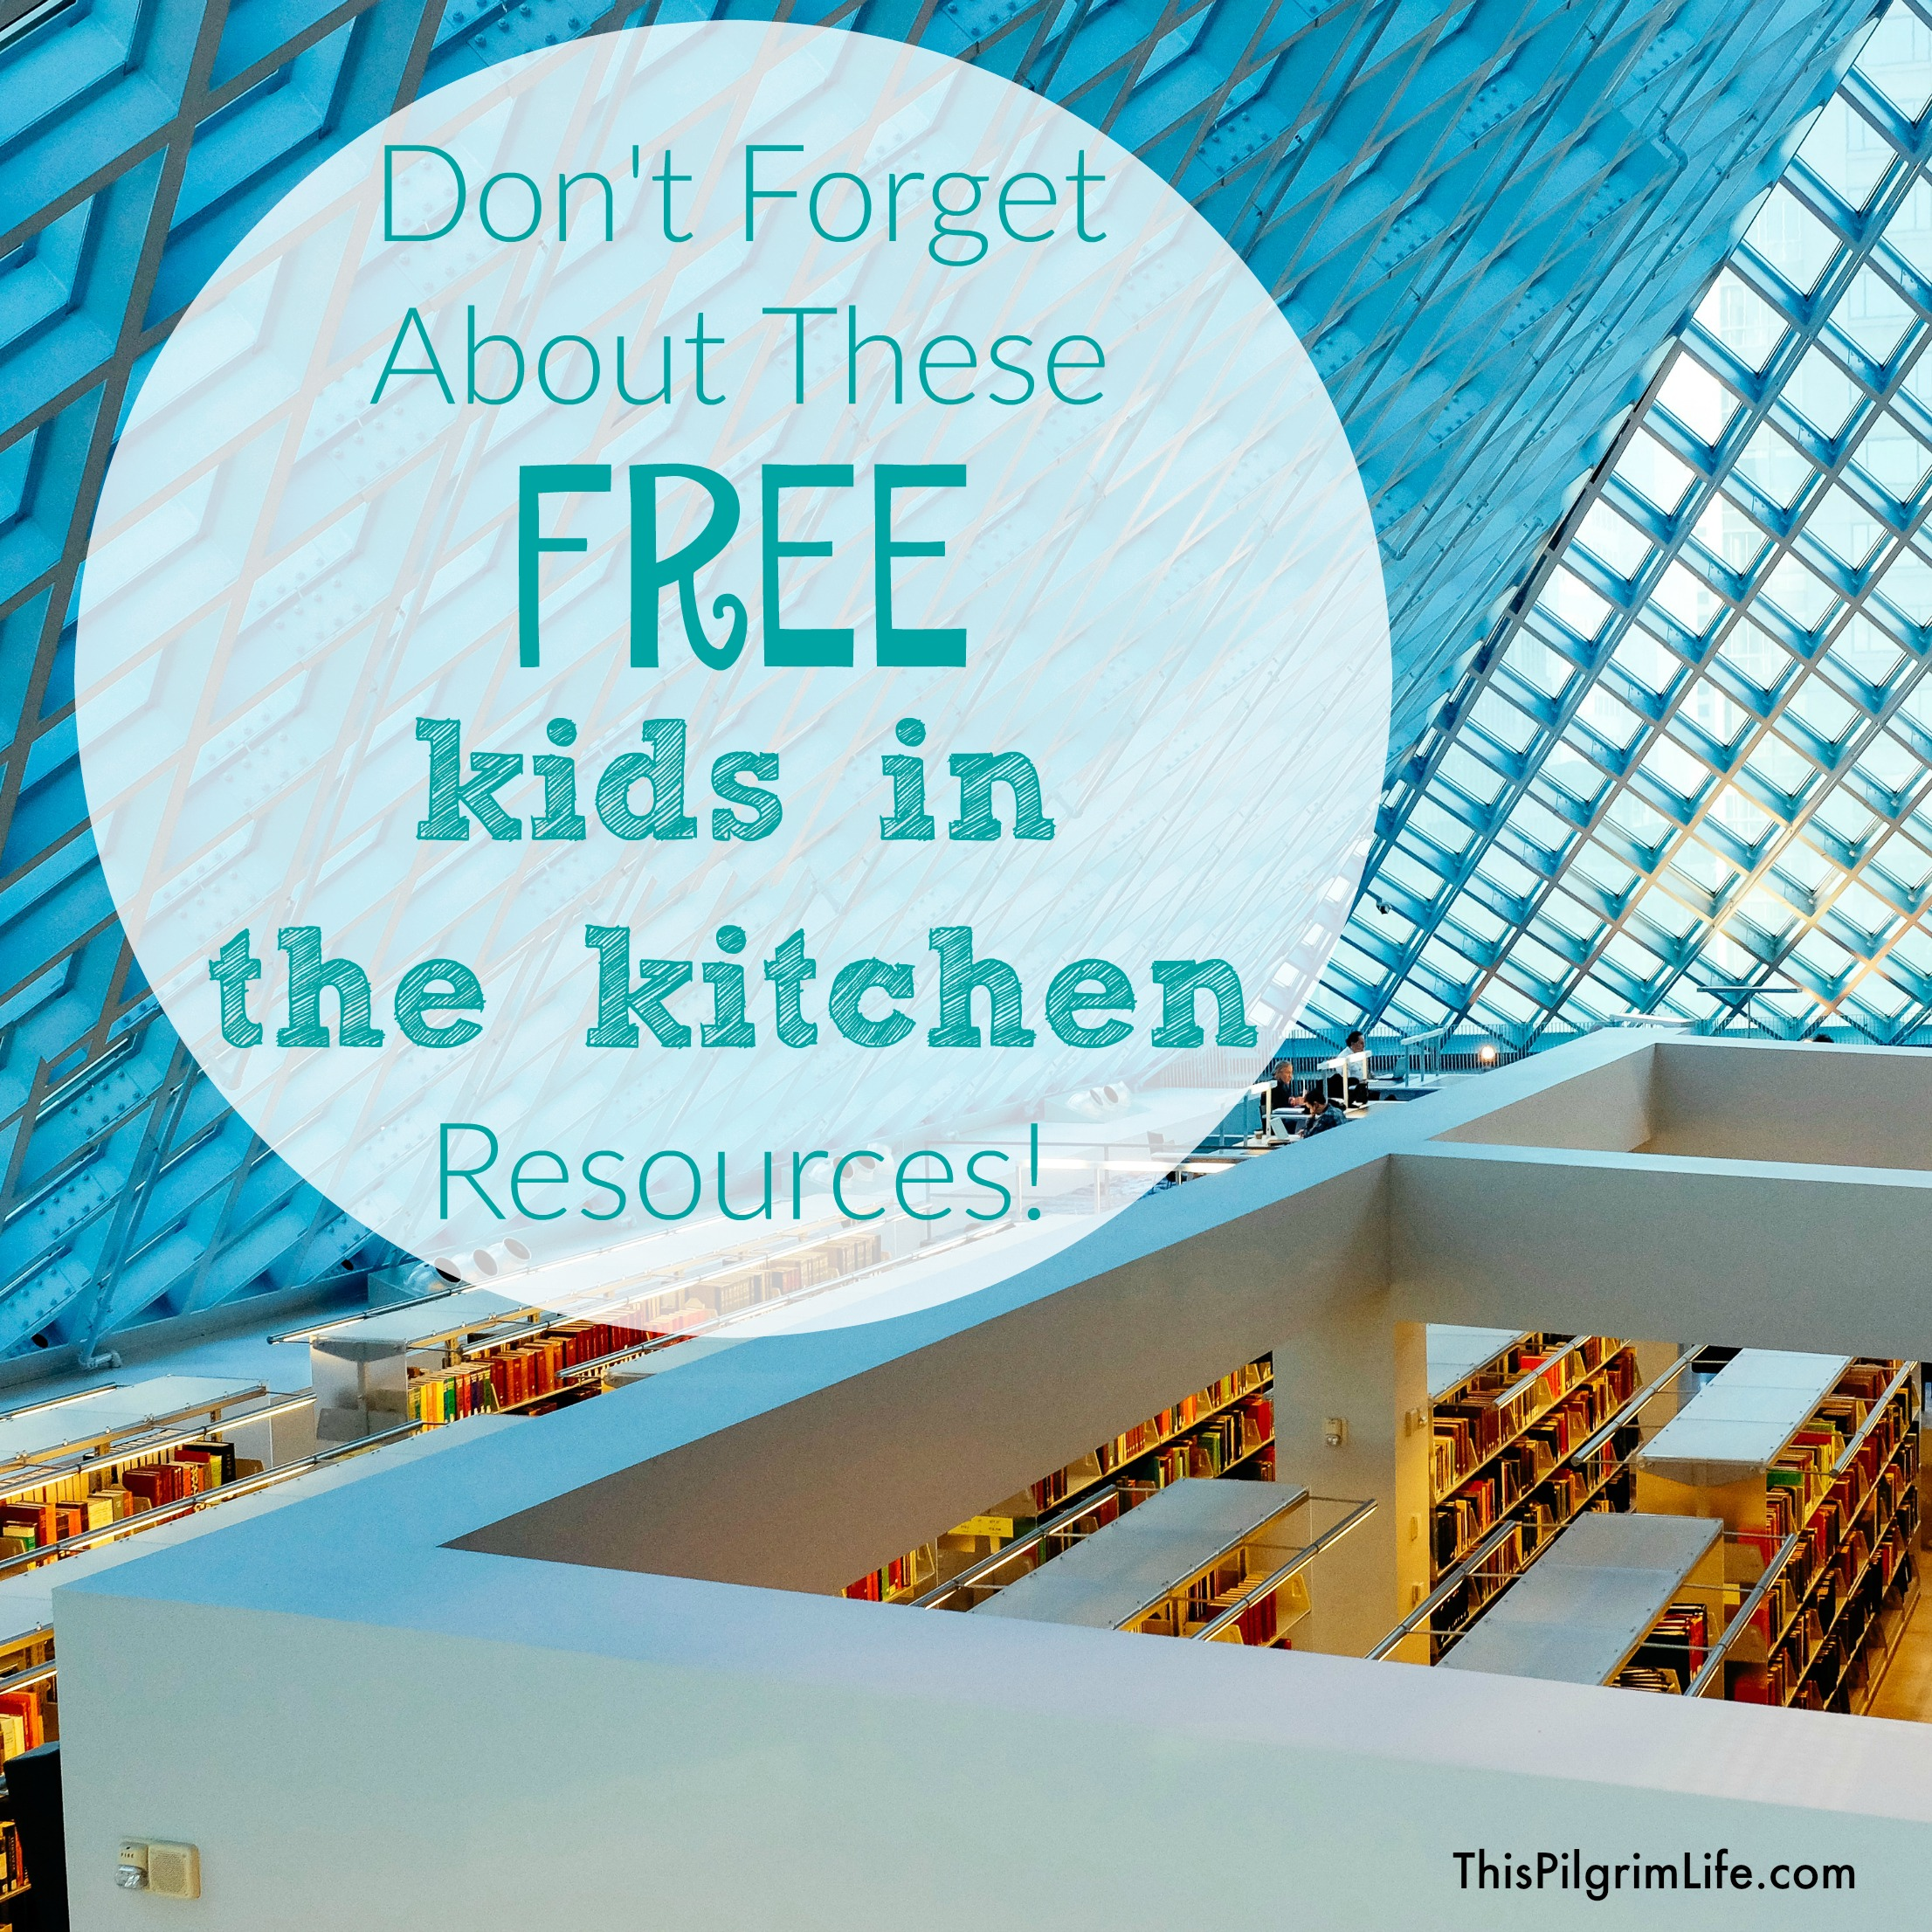 Free resources to help get your kids in the kitchen, and easy directions for stovetop popcorn.